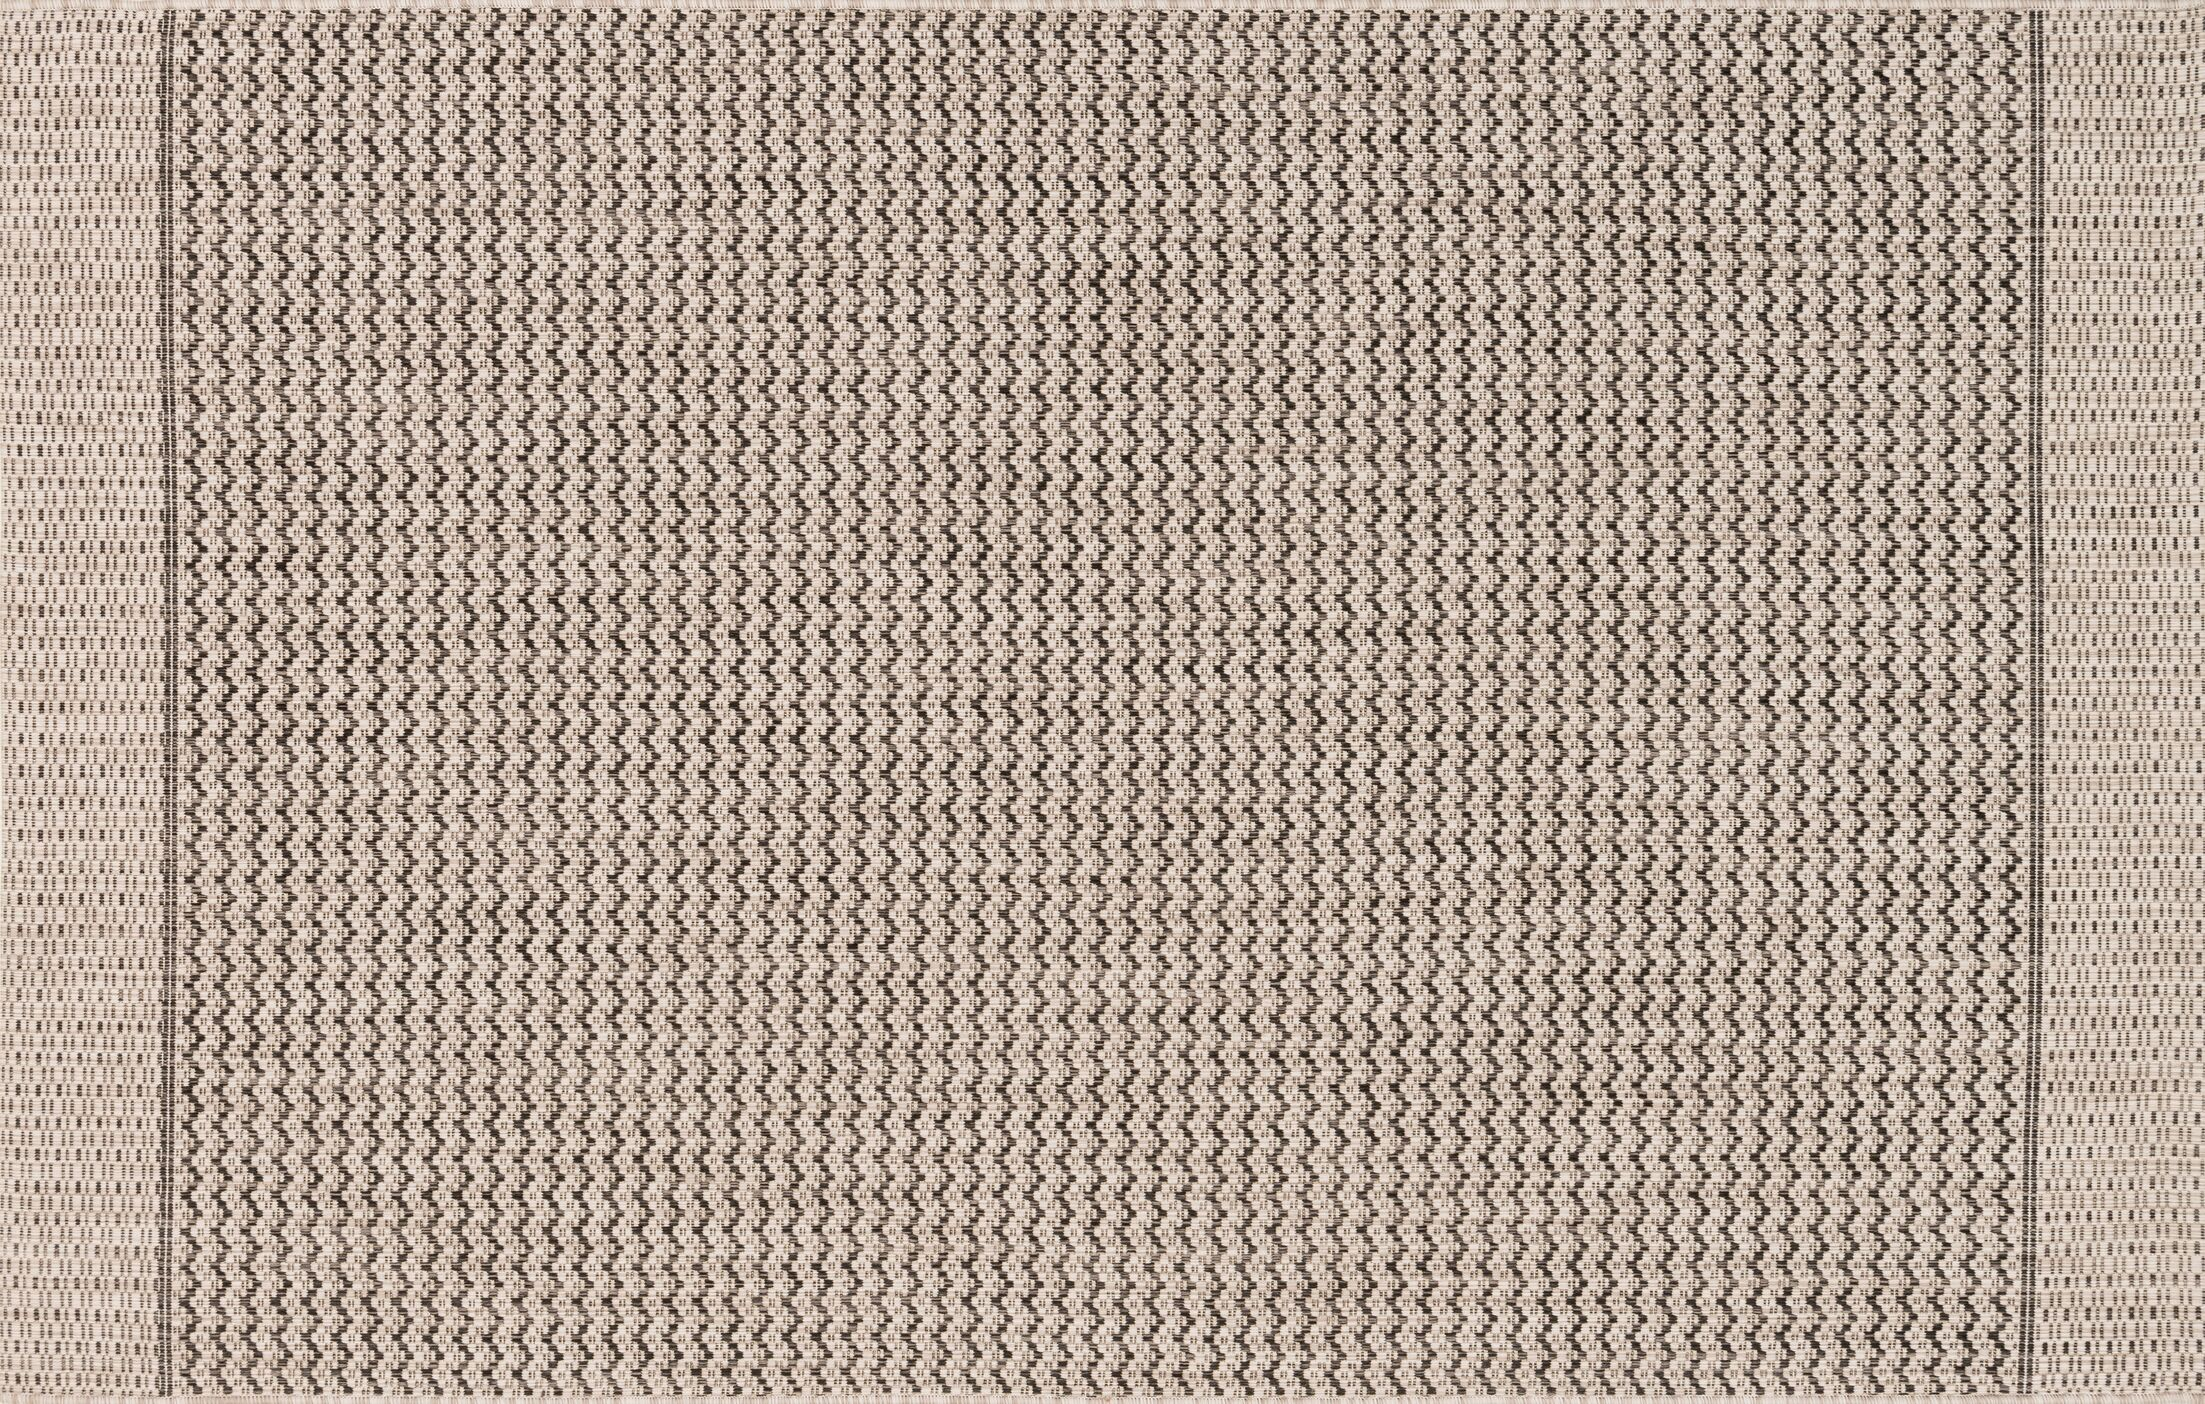 Bundy Gray Indoor/Outdoor Area Rug Rug Size: Rectangle 9'2